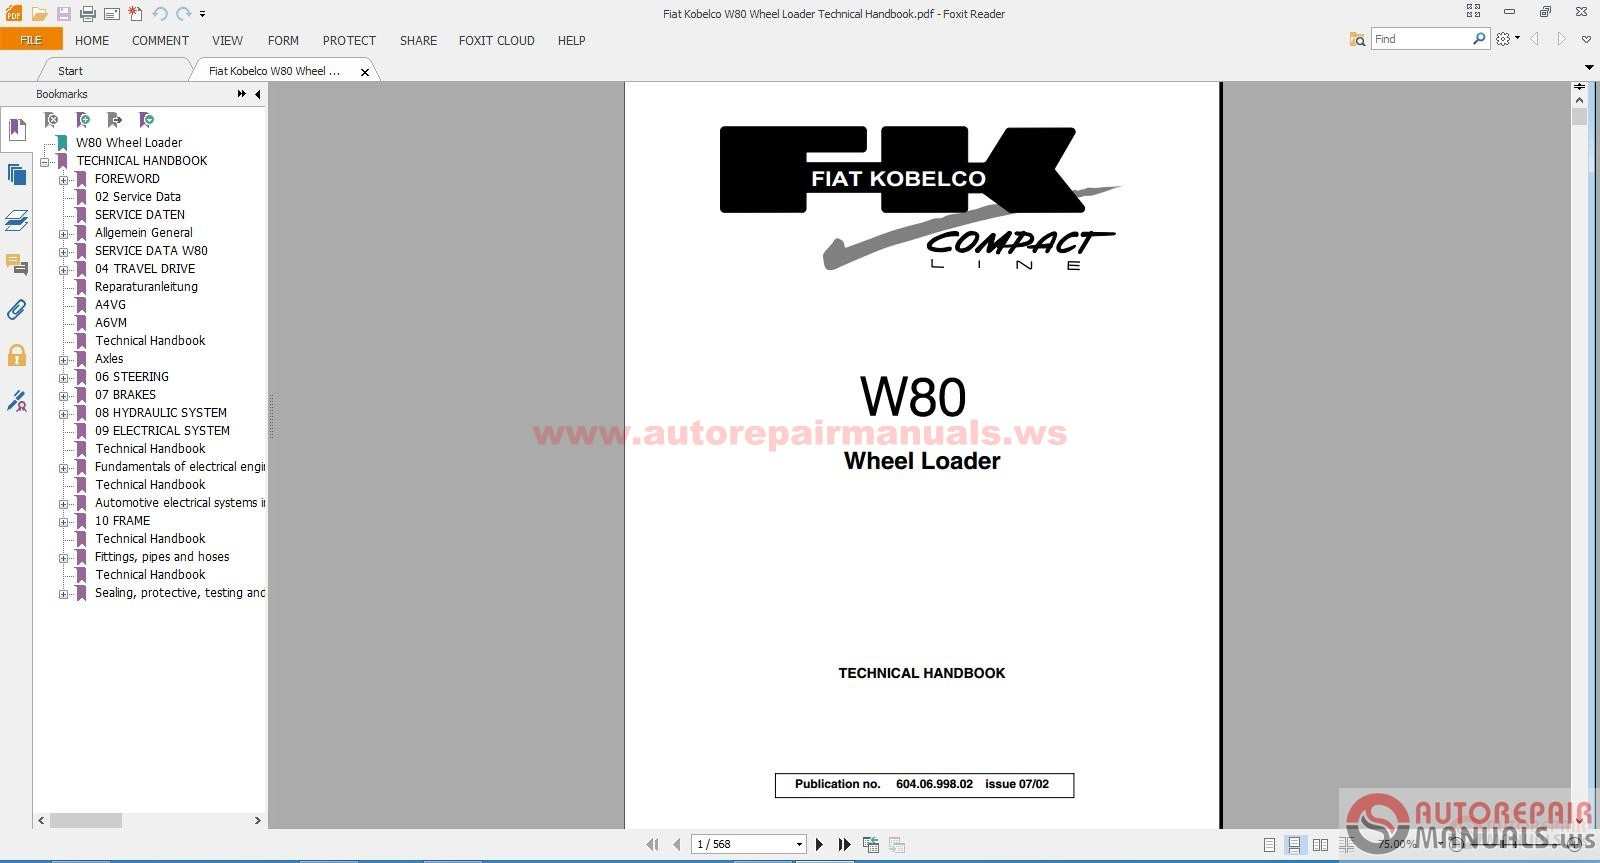 fiat kobelco w80 wheel loader technical handbook